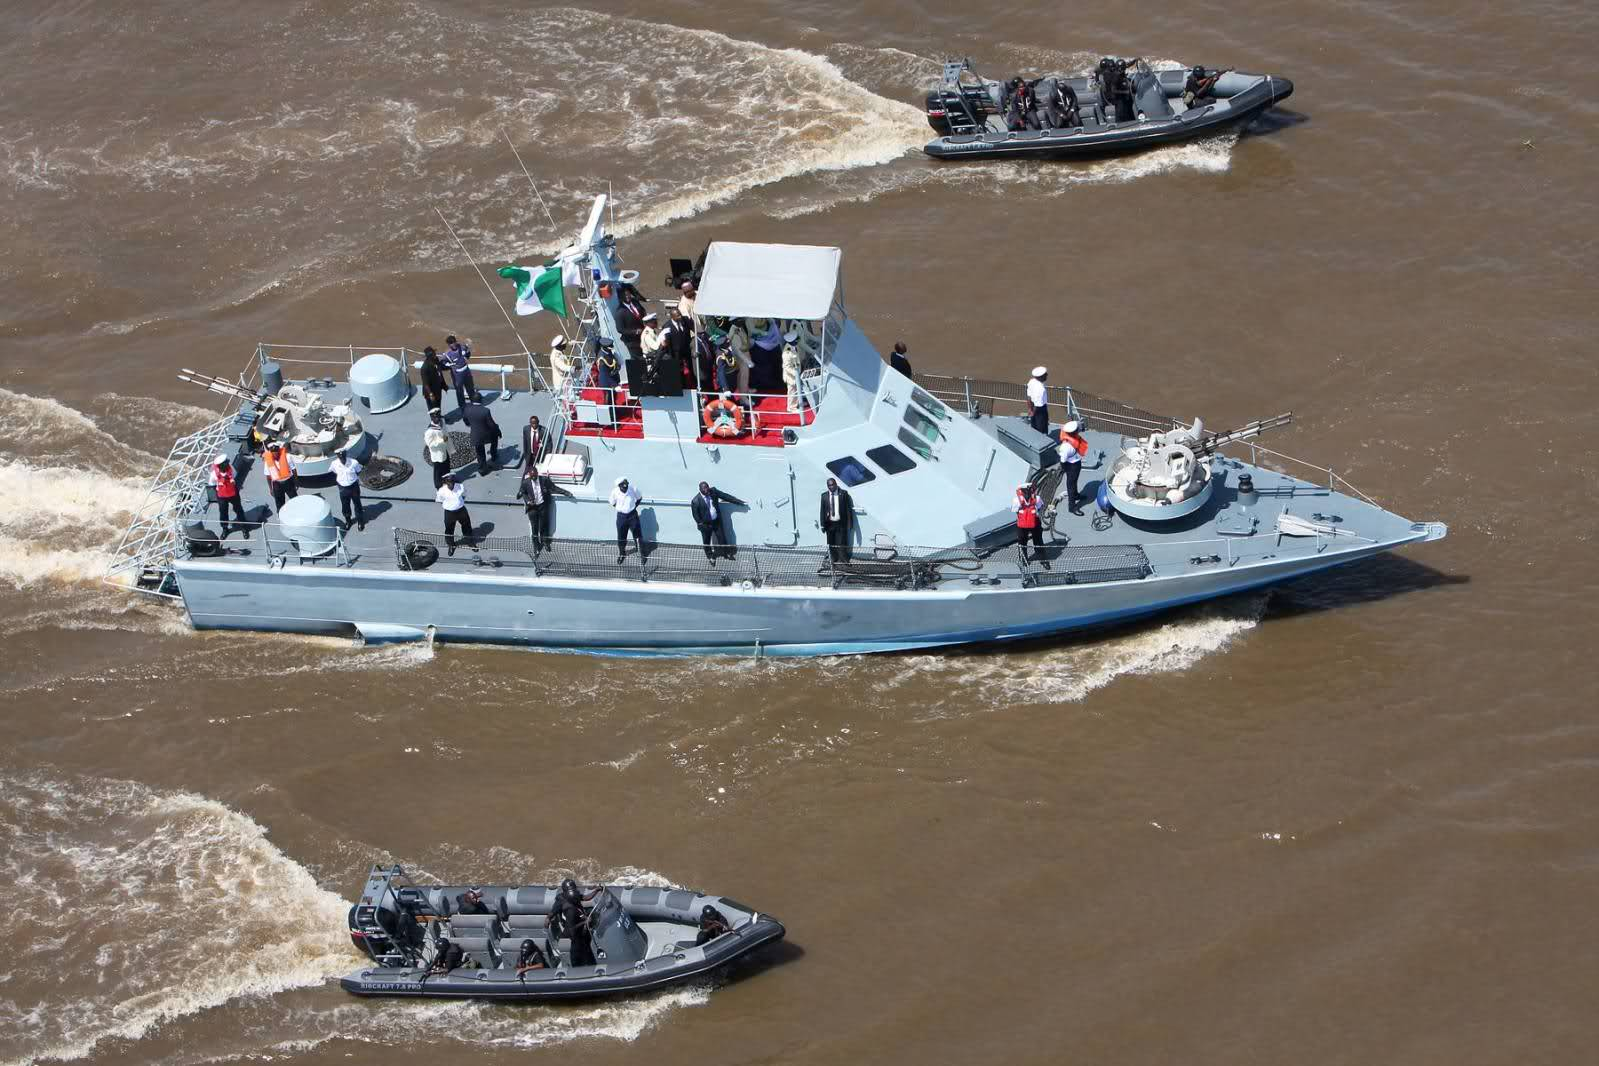 nigerian-navy-counter-piracy-demonstration-warboats-org